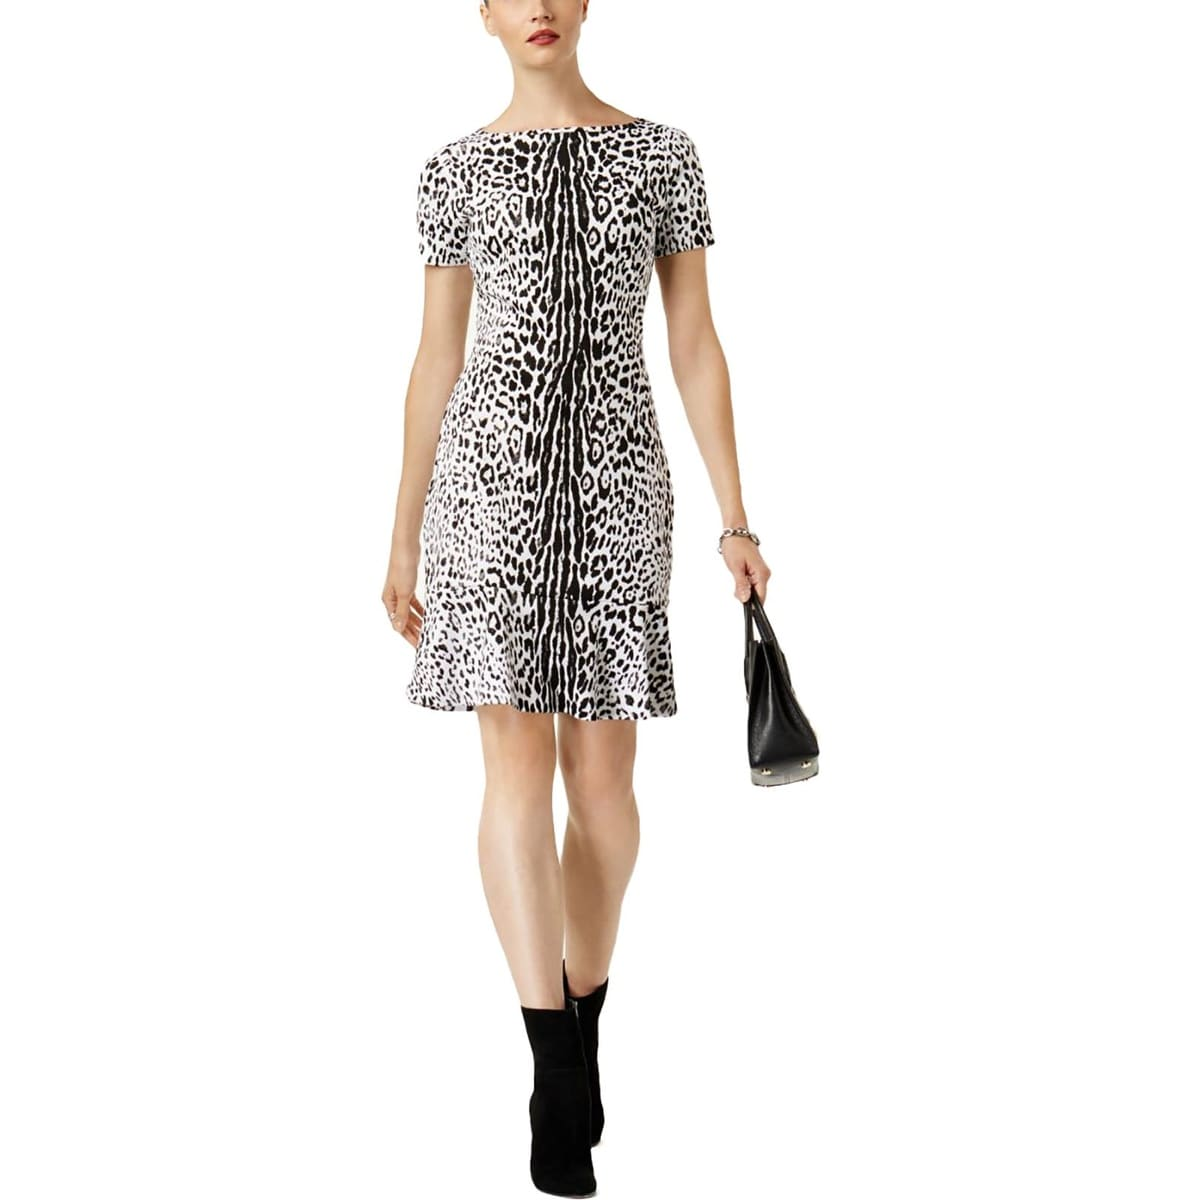 e92149124d0 MICHAEL Michael Kors Dresses | Find Great Women's Clothing Deals Shopping at  Overstock